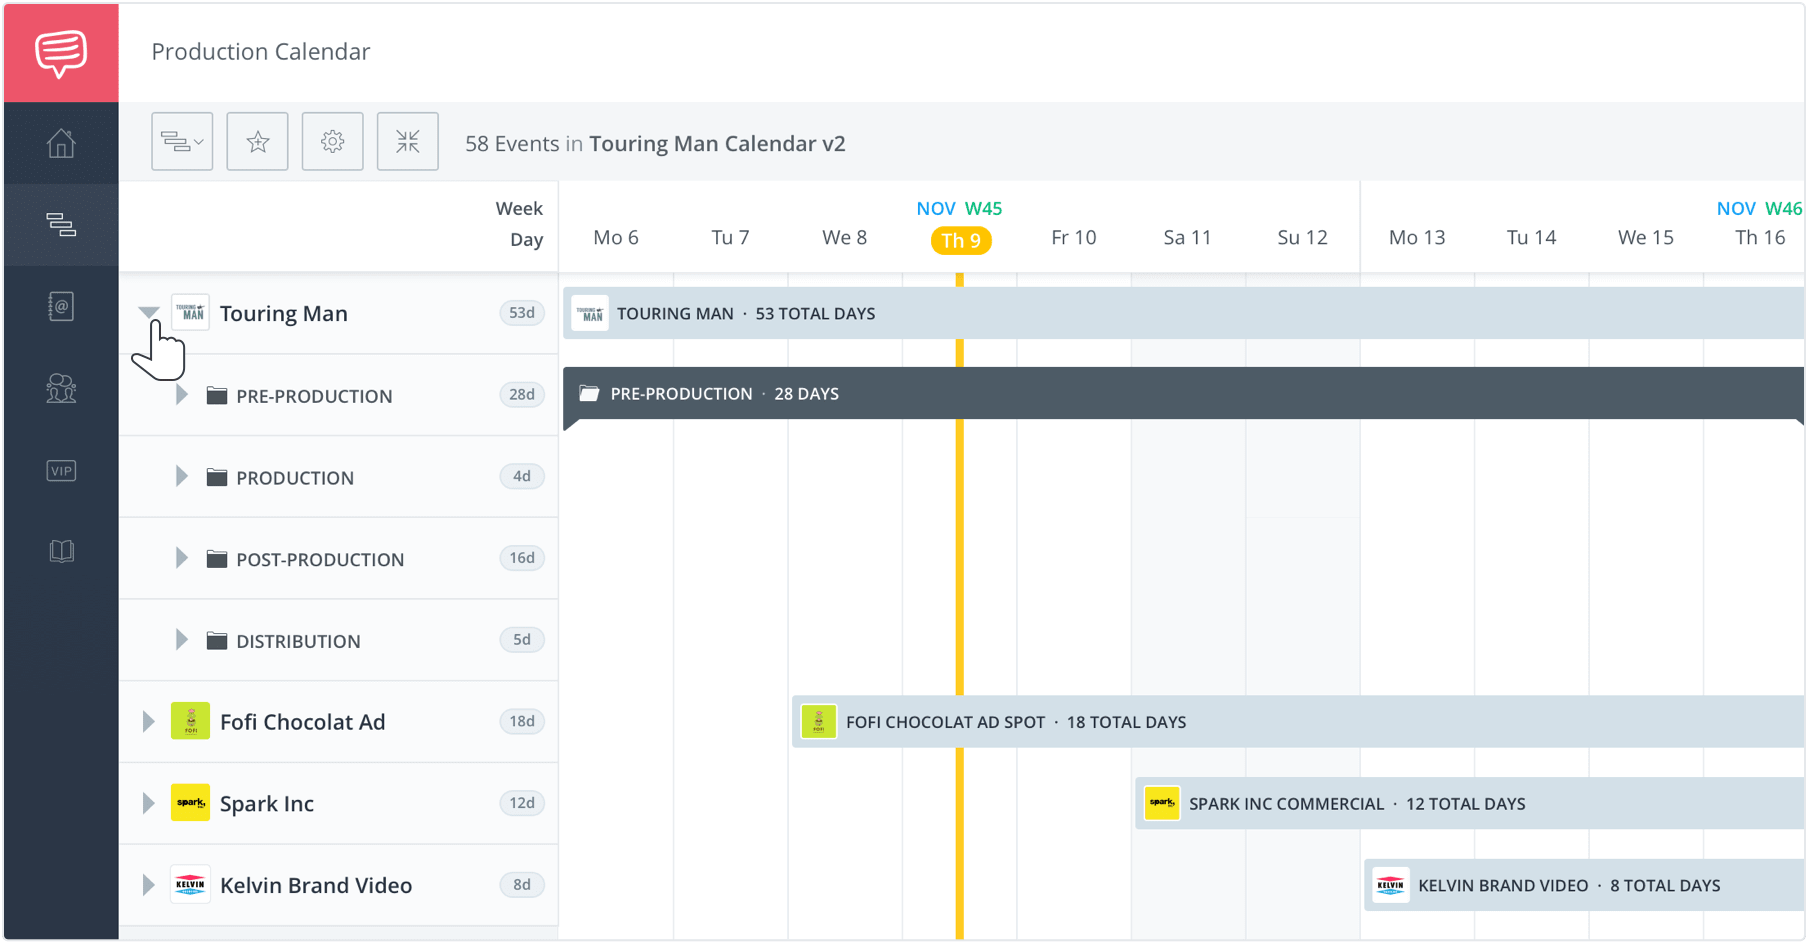 Film TV and Video Production Calendar - View Multiple Calendars on Single Page - StudioBinder Production Management Software